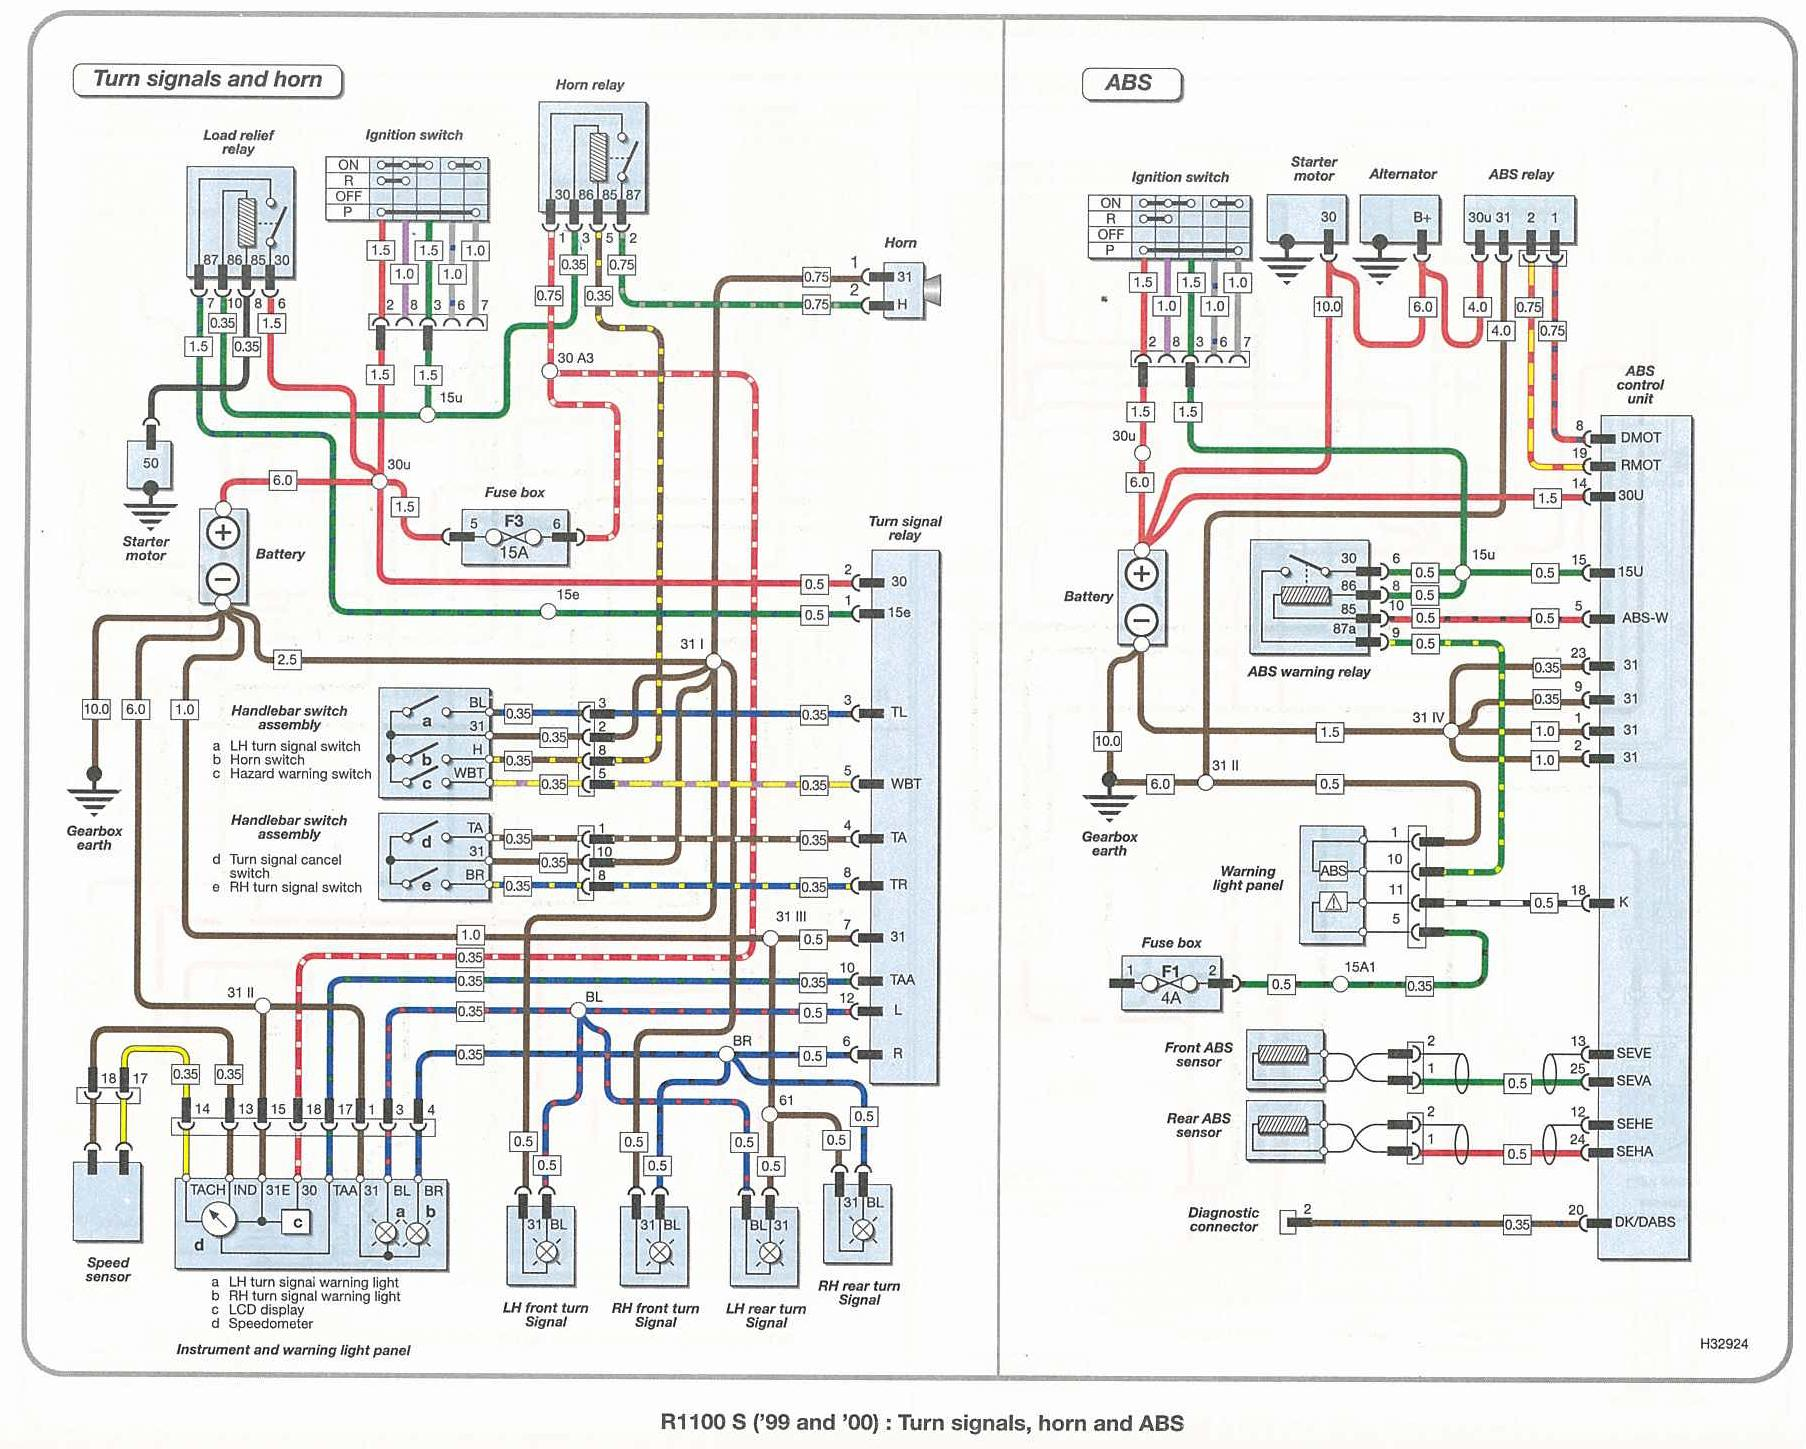 wiring03 bmw wiring diagram bmw wiring diagrams e39 \u2022 wiring diagrams j bmw e90 radio wiring diagram at bayanpartner.co